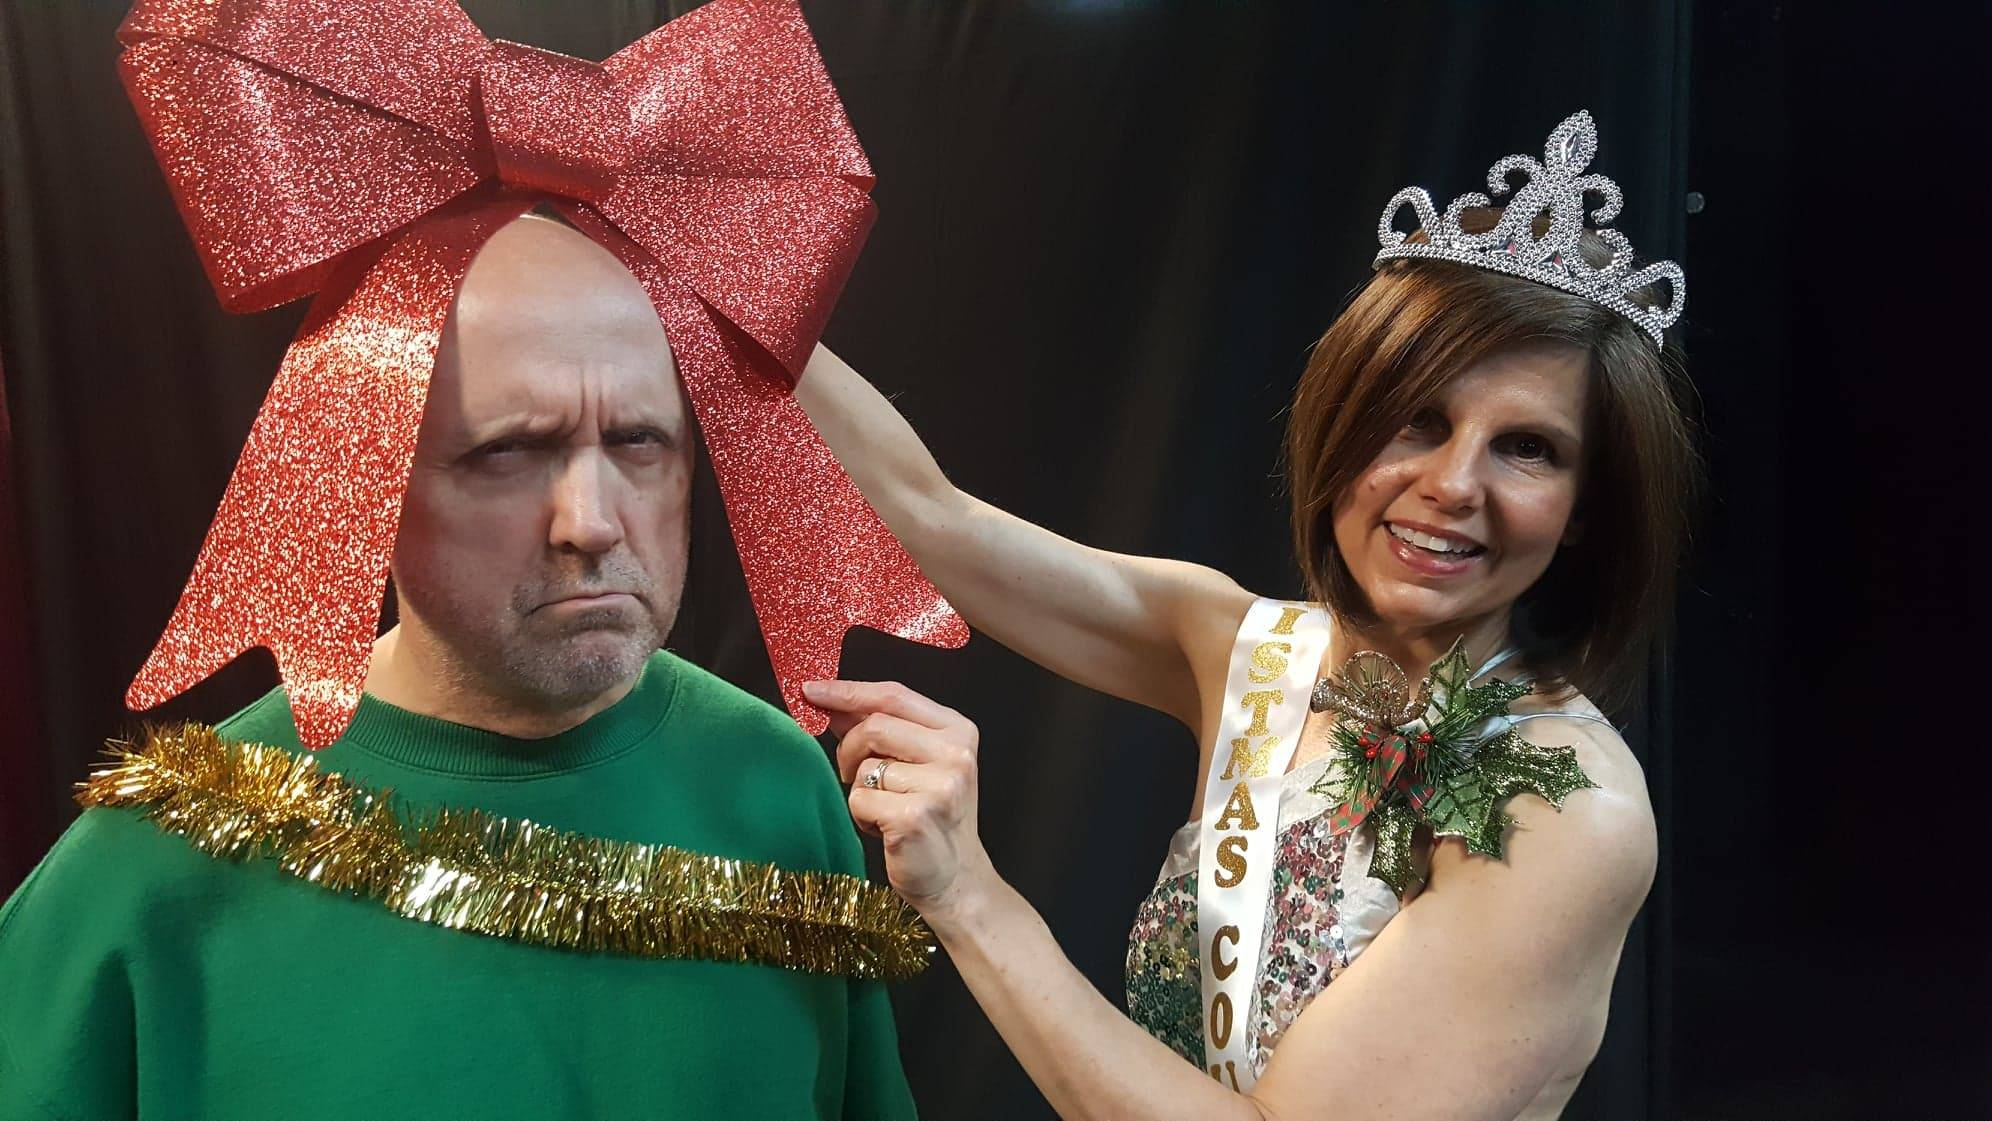 "Douglas (Danny Glenn) is not amused to receive a bow from Crystal (Jen Connon) in ""Seasonal Bows"" at Vero Voce Theater in St. Charles."